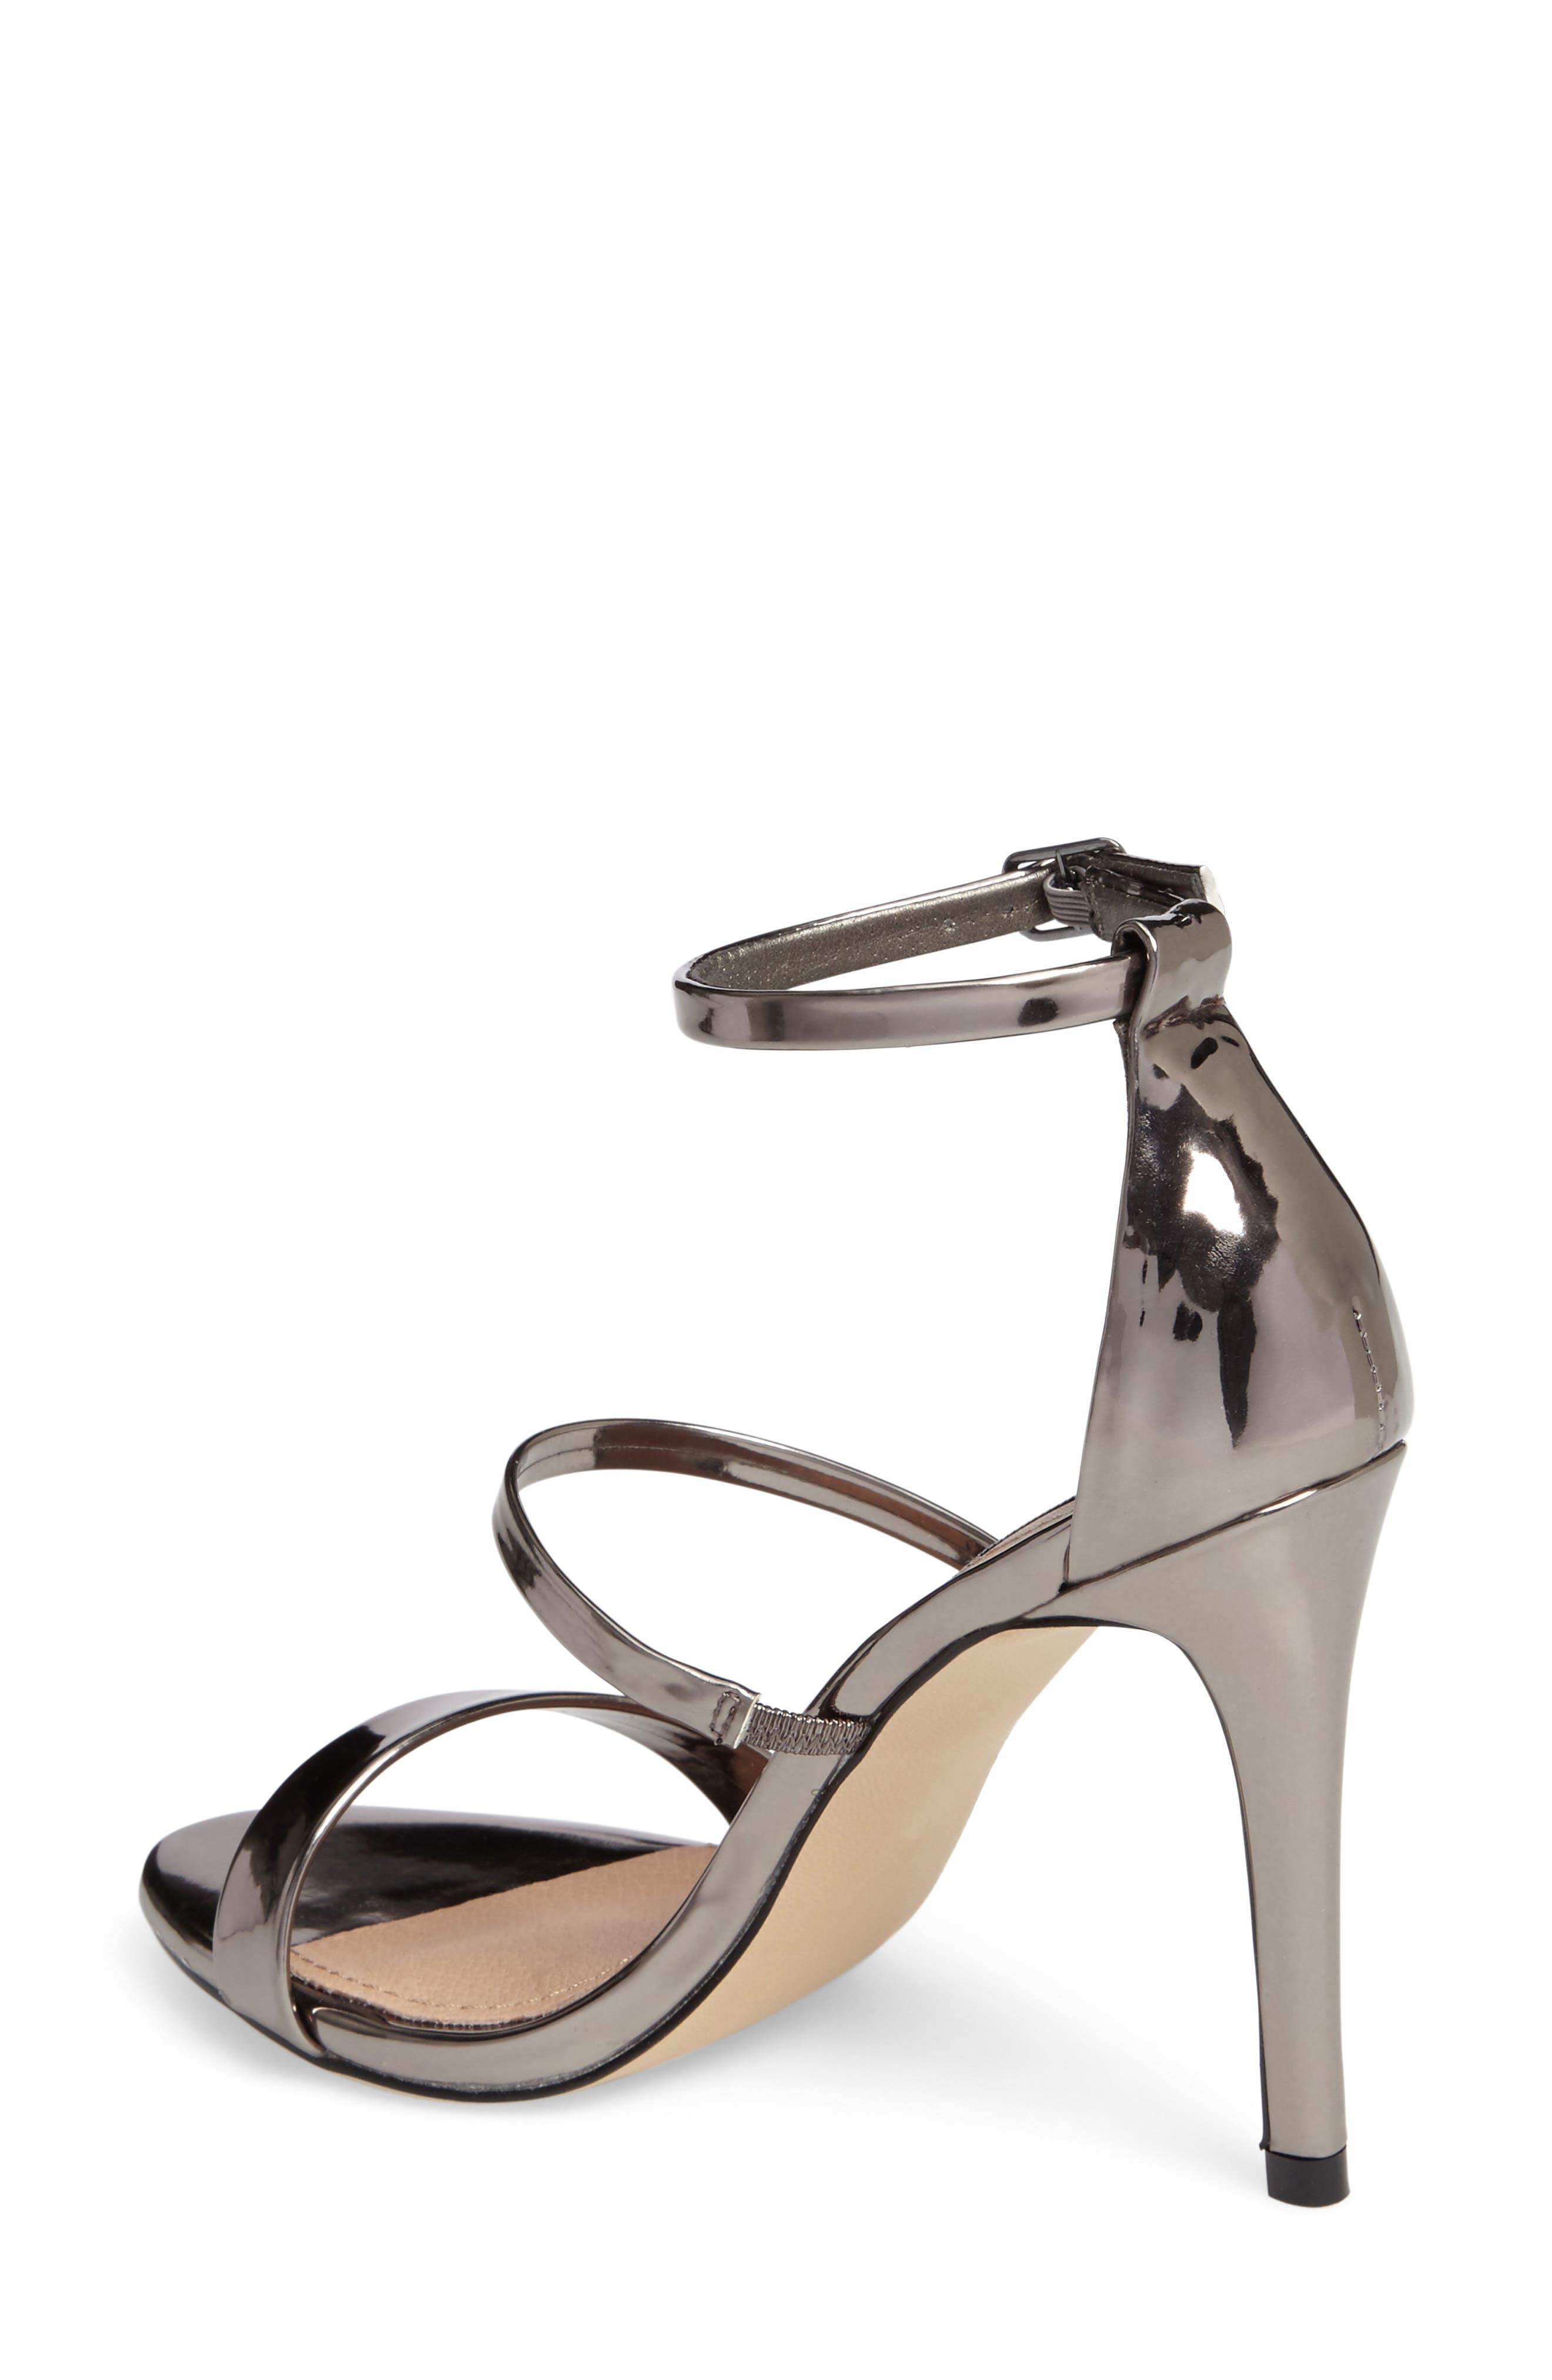 Sheena Strappy Sandal,                             Alternate thumbnail 2, color,                             Pewter Faux Leather